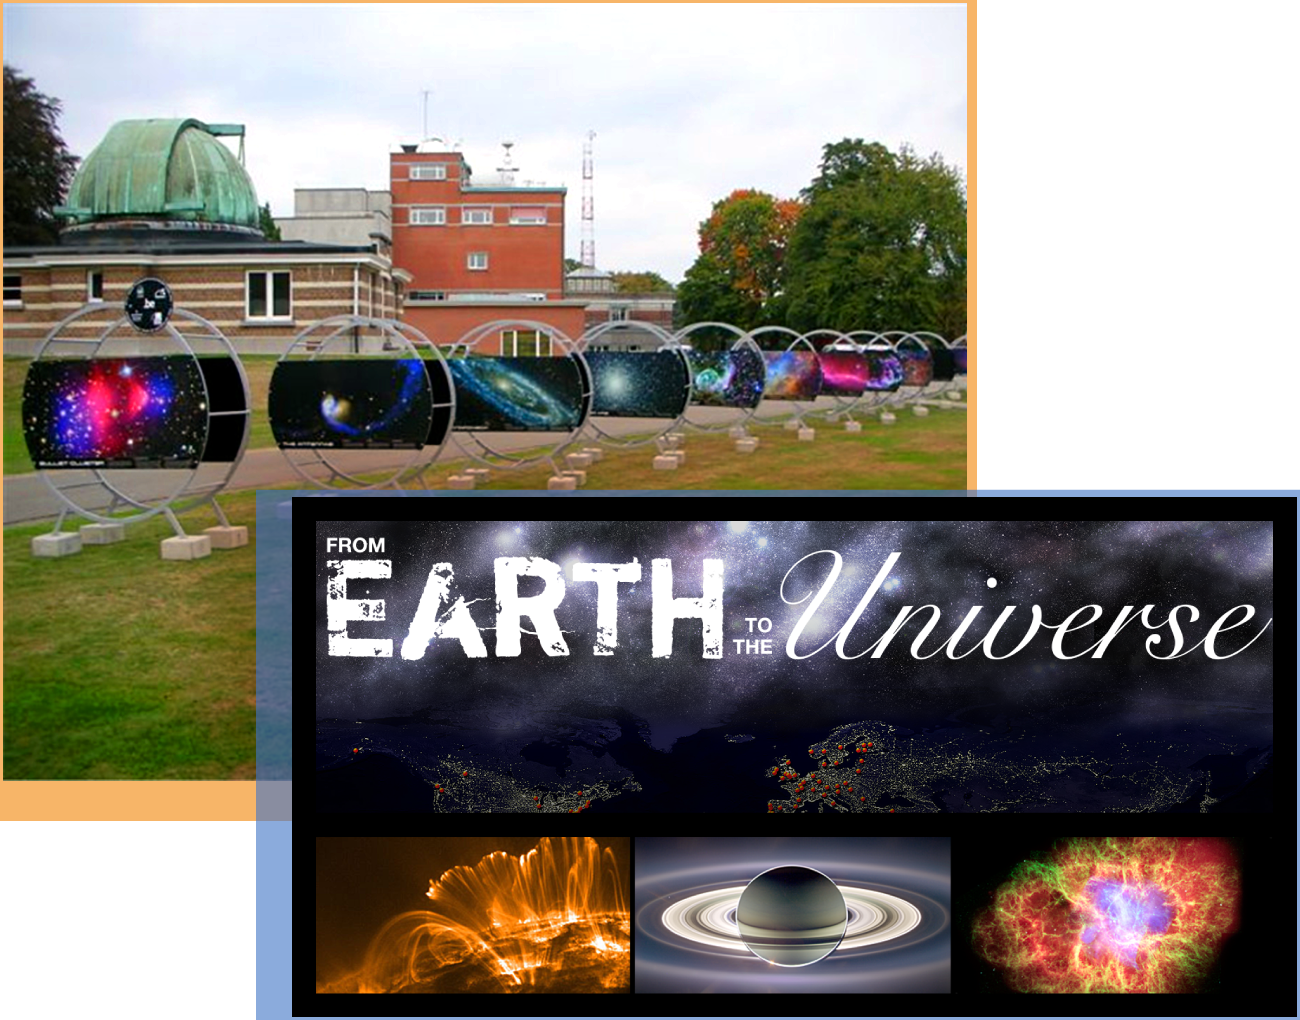 From Earth to the Universe - This exhibit comprises many popular images of the universe taken by ground- and space-based telescopes, accompanied by the science, knowledge, and understanding behind them. This eye-catching exhibit is ideal for non-traditional venues such as public parks, art museums, shopping malls, and metro stations.Audience: All LearnersWebsite: From Earth to the Universe projectExhibit material: Exhibit stand assembly (803 KB PDF)